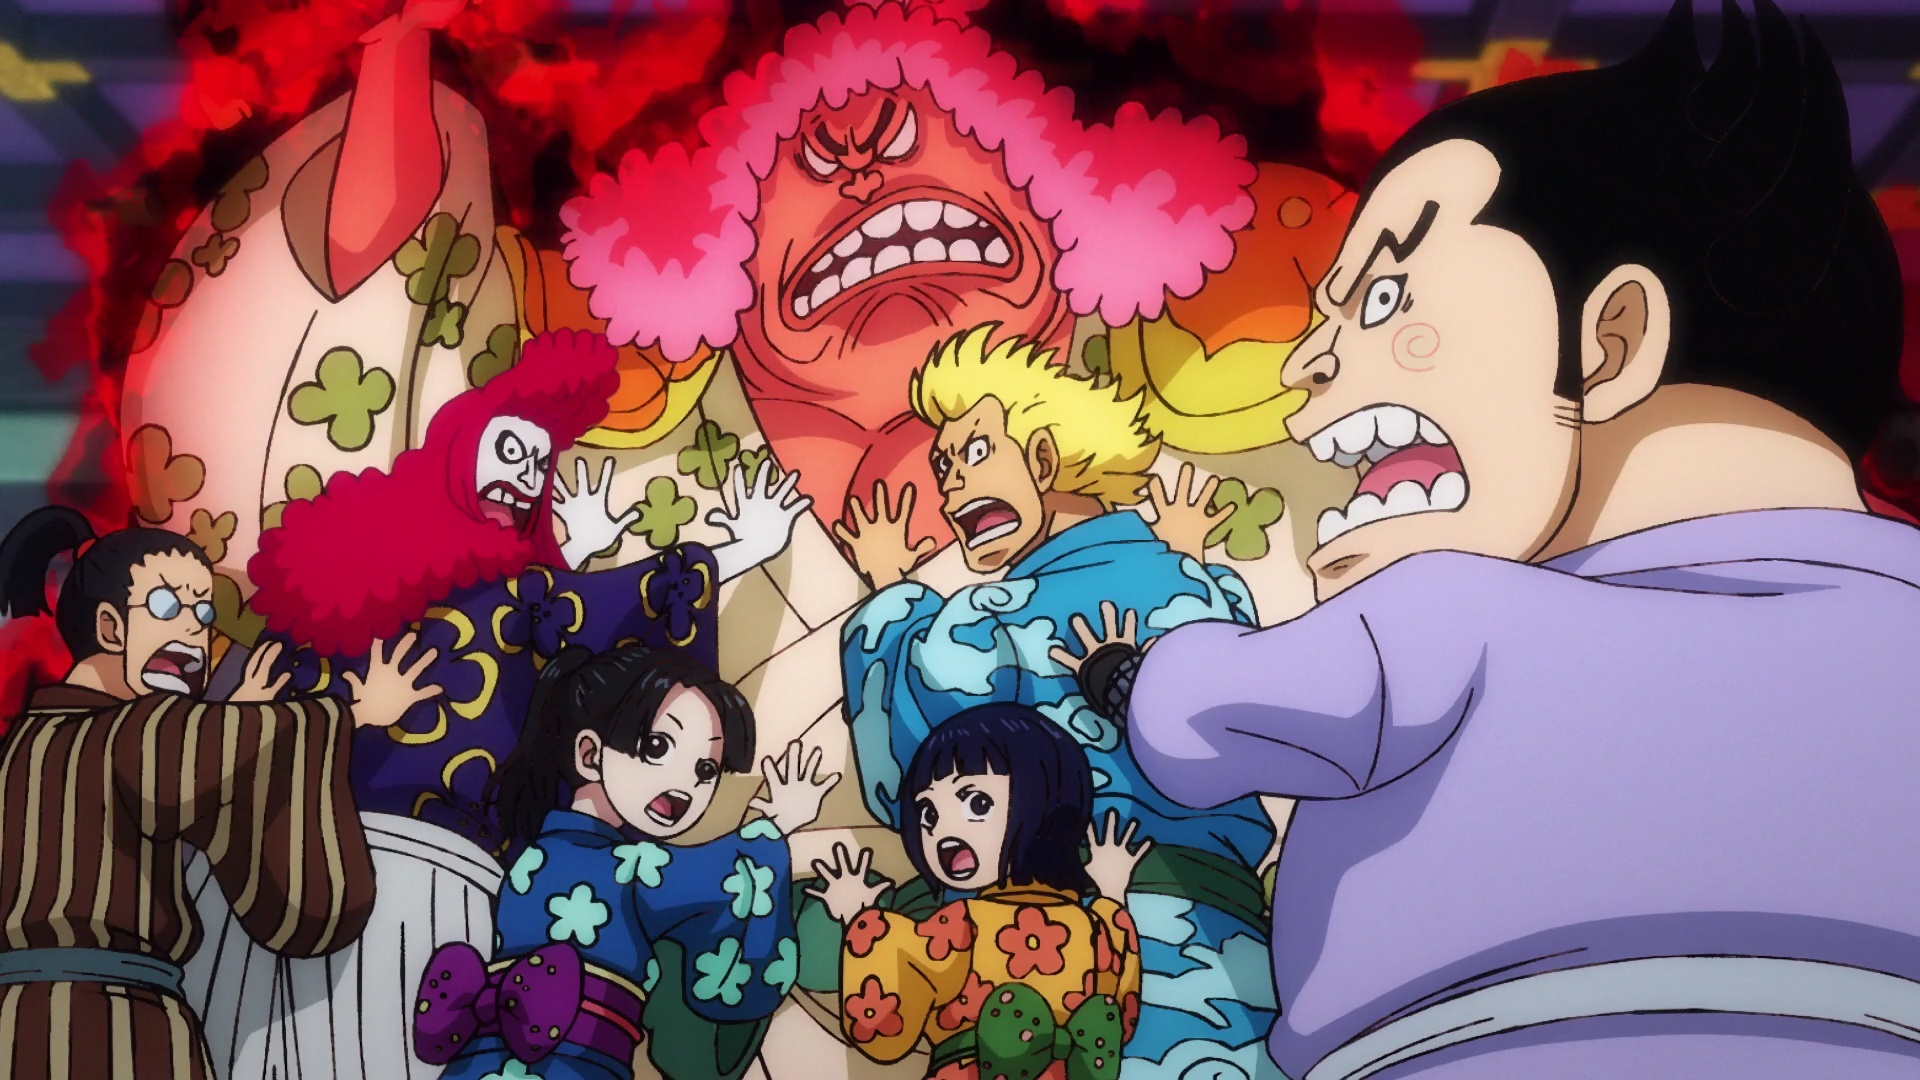 ONE PIECE 962 VOSTFR SD/HD/HD 10BITS/FHD News background